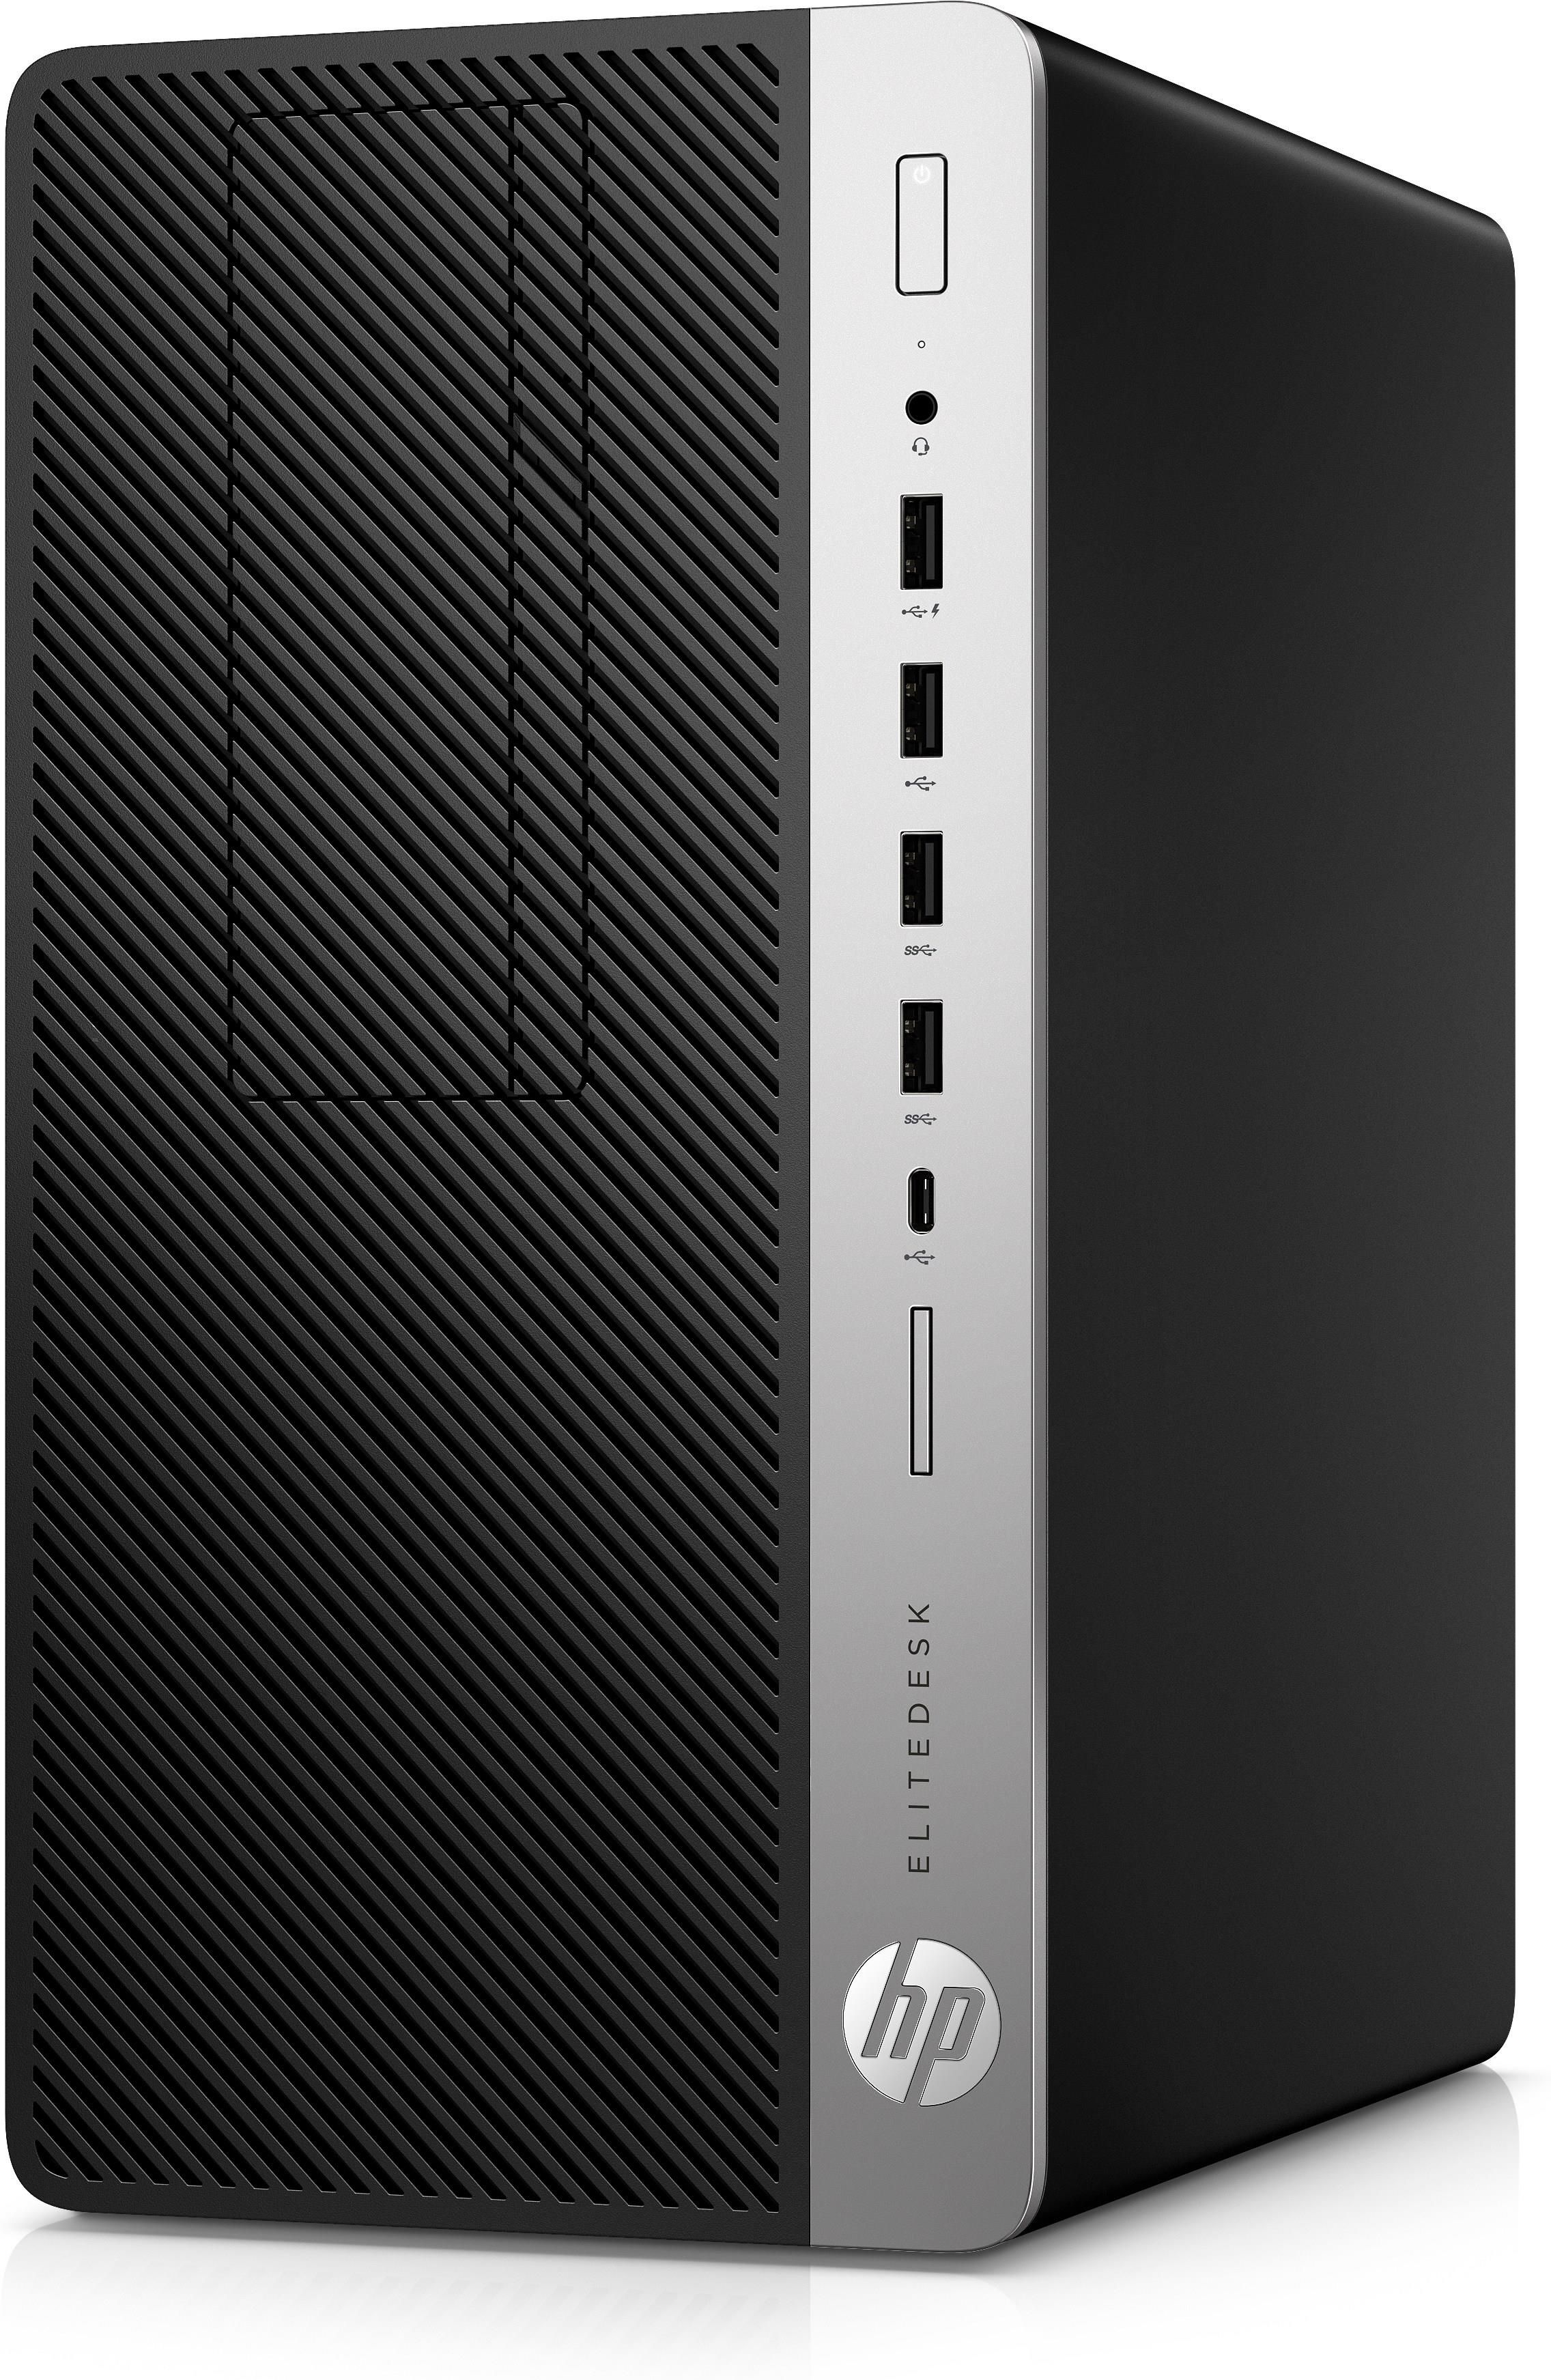 HP EliteDesk 705 G4 Microtower PC Ryzen 5 PRO (2400G) 3.6GHz 8GB 256GB SSD DVD Writer LAN Windows 10 Pro (Radeon RX Vega 11 Graphics)